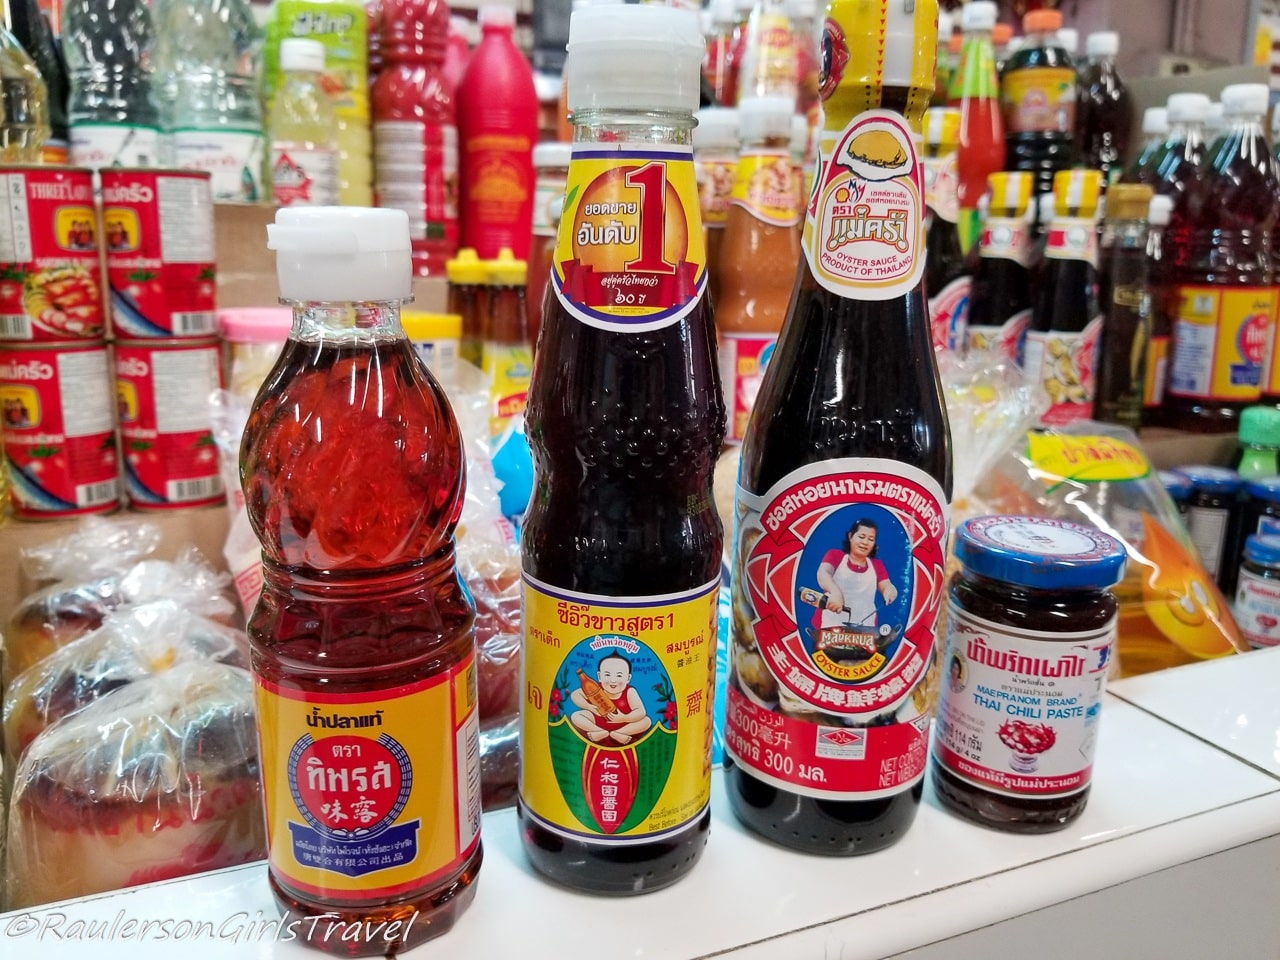 Sauces to use in Thai cooking